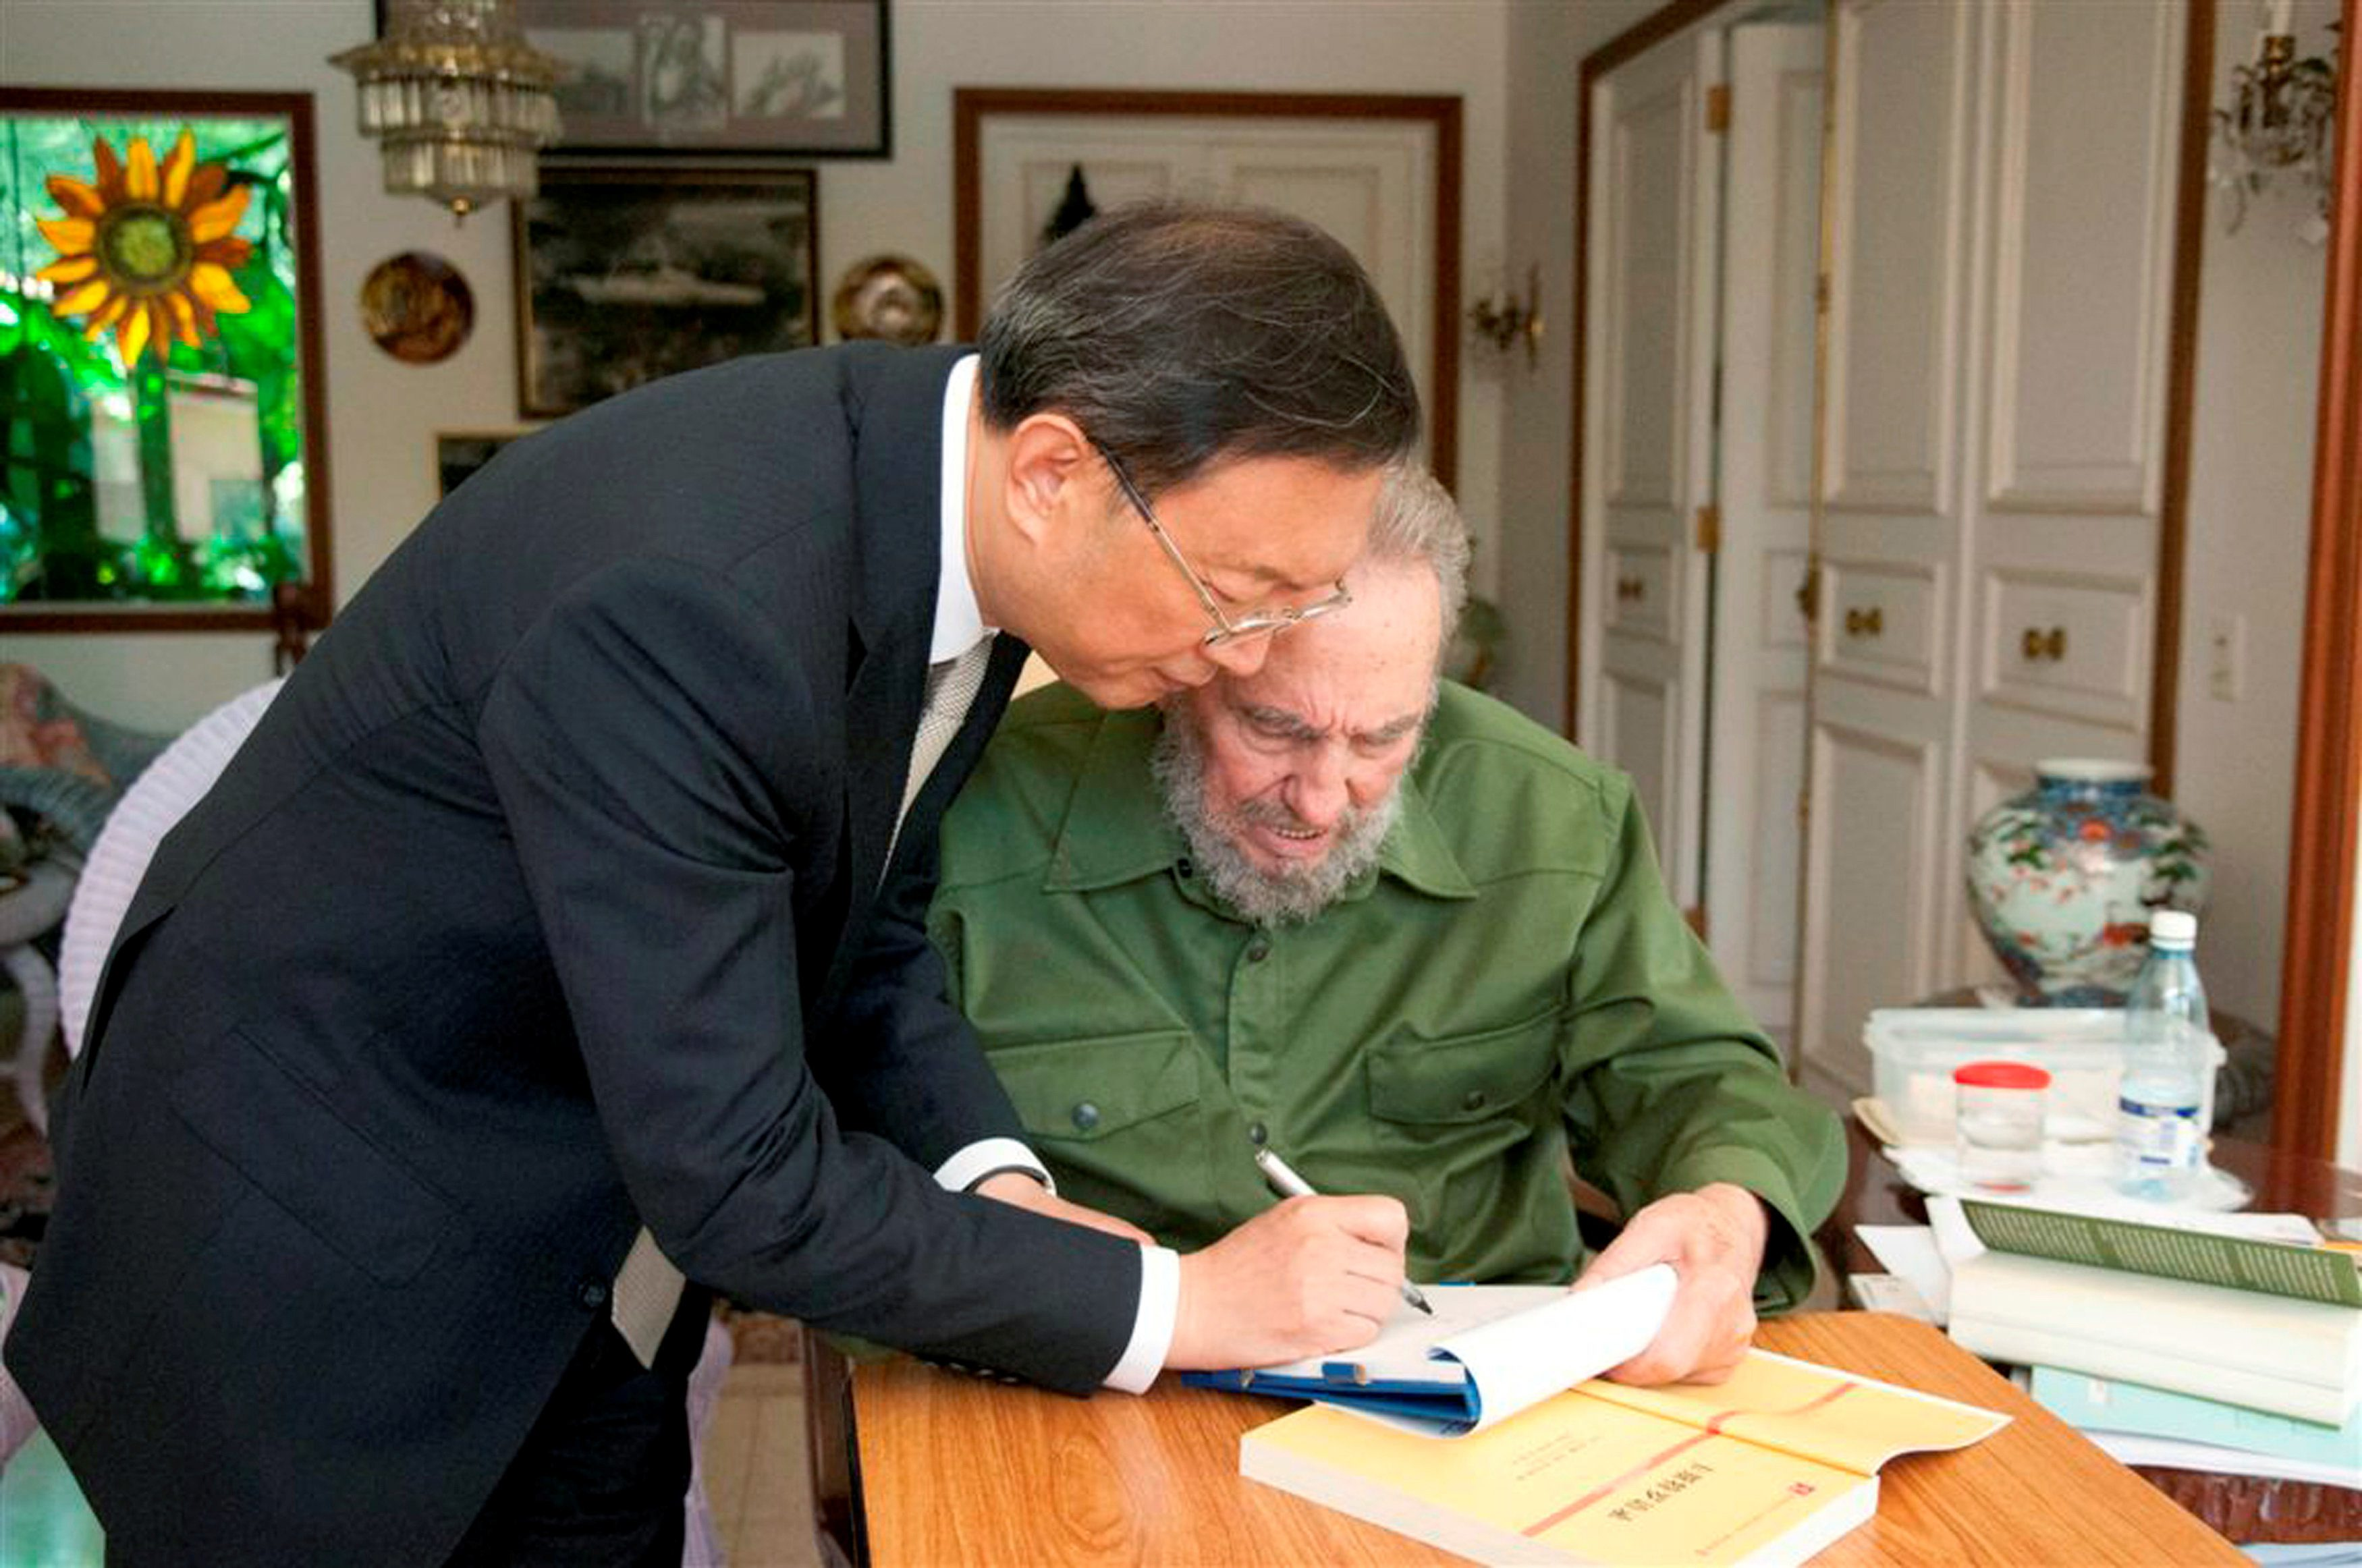 China's Foreign Minister Yang Jiechi (L) writes in a notebook as former Cuban leader Fidel Castro holds it during a meeting in Havana in this August 1, 2010 file photo.  REUTERS/Roberto Chile/File Photo    EDITORIAL USE ONLY.